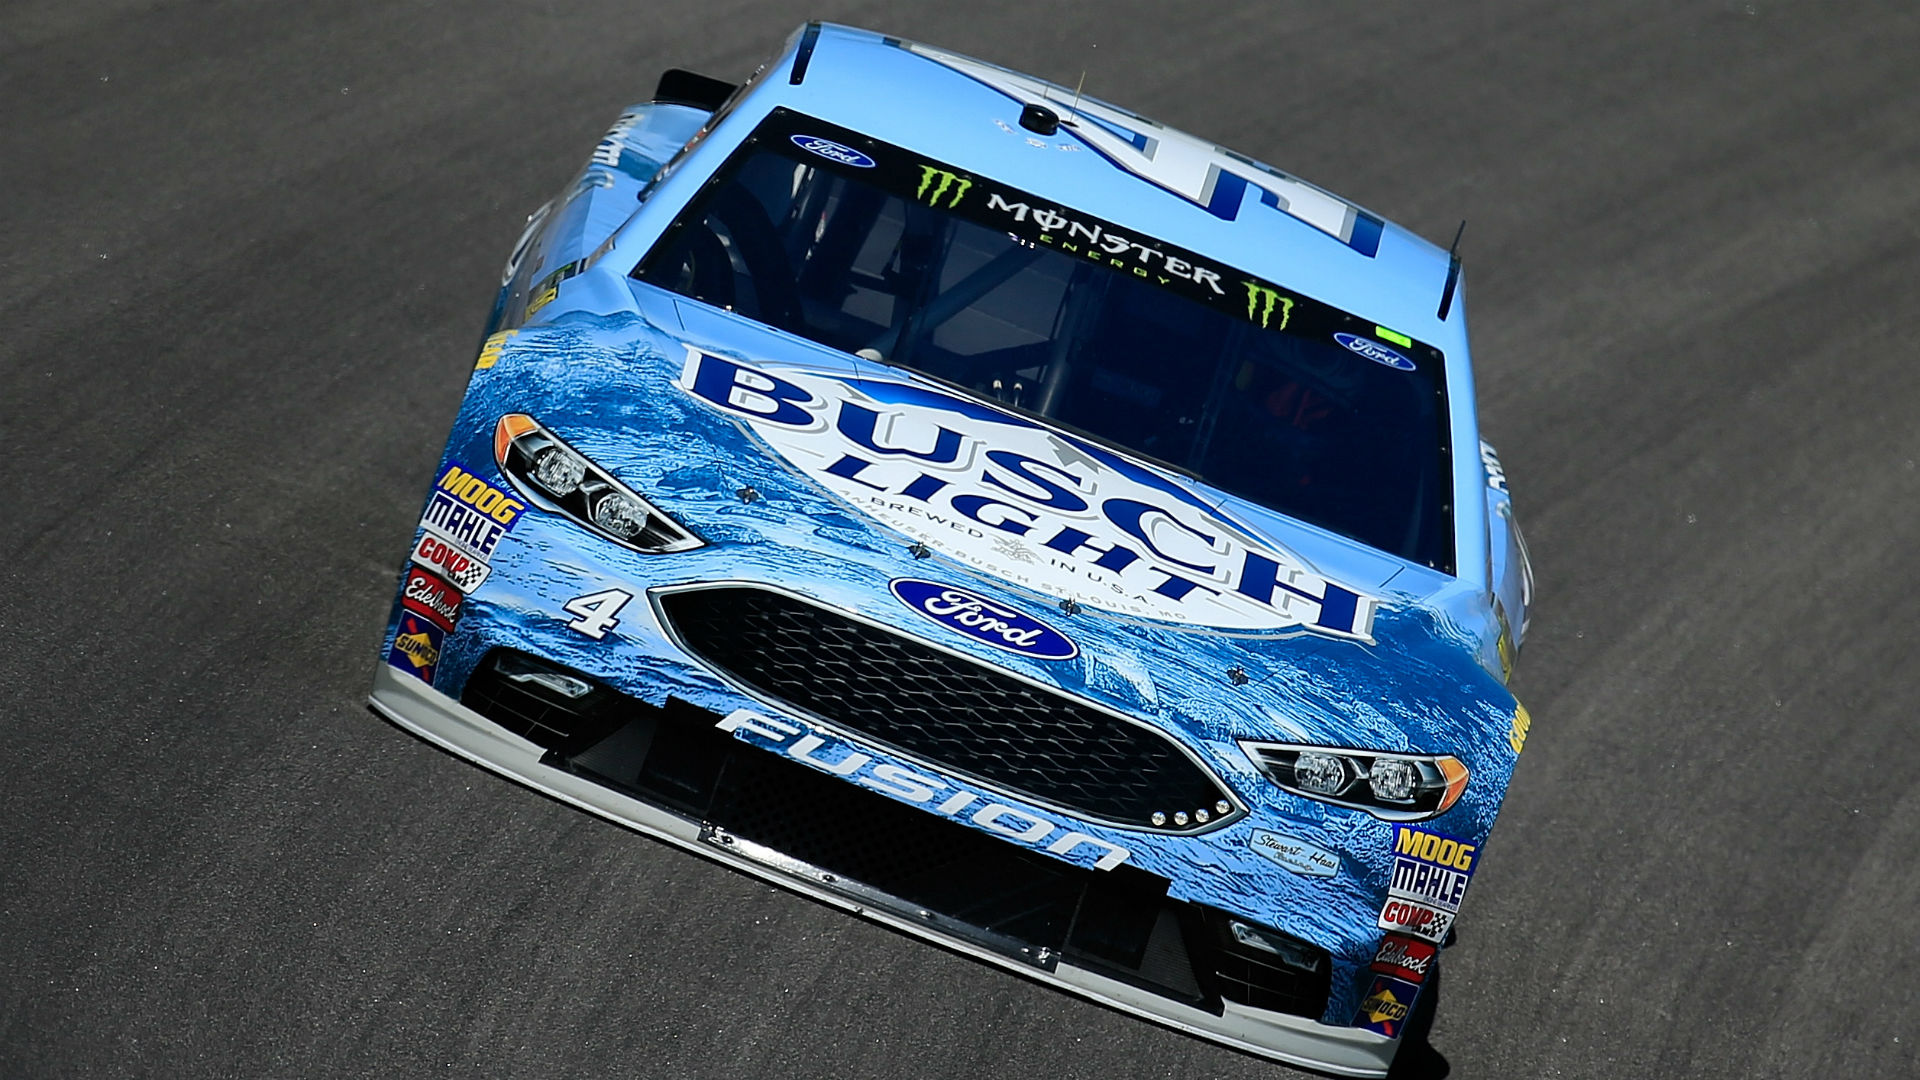 NASCAR at Kansas race: Results, highlights from Harvick's KC Masterpiece 400 win